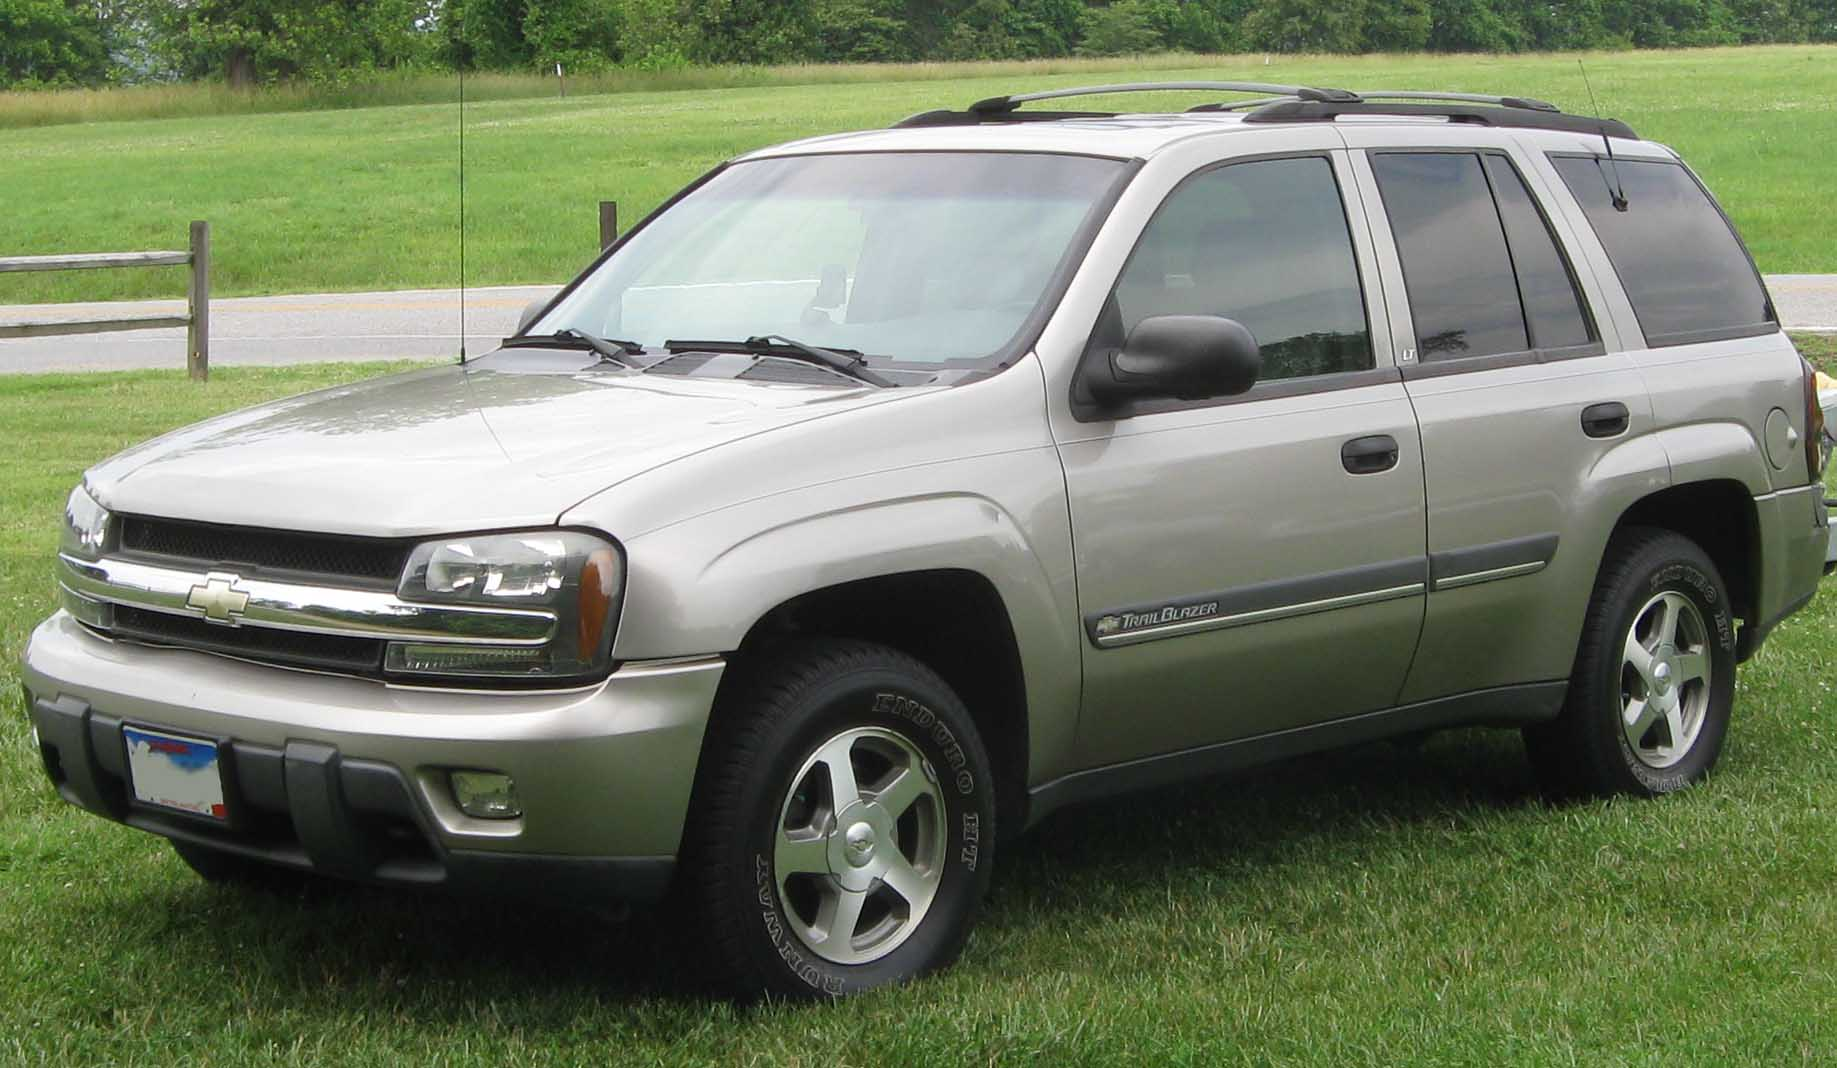 chevrolet trailblazer suv wikipedia chevrolet trailblazer suv wikipedia